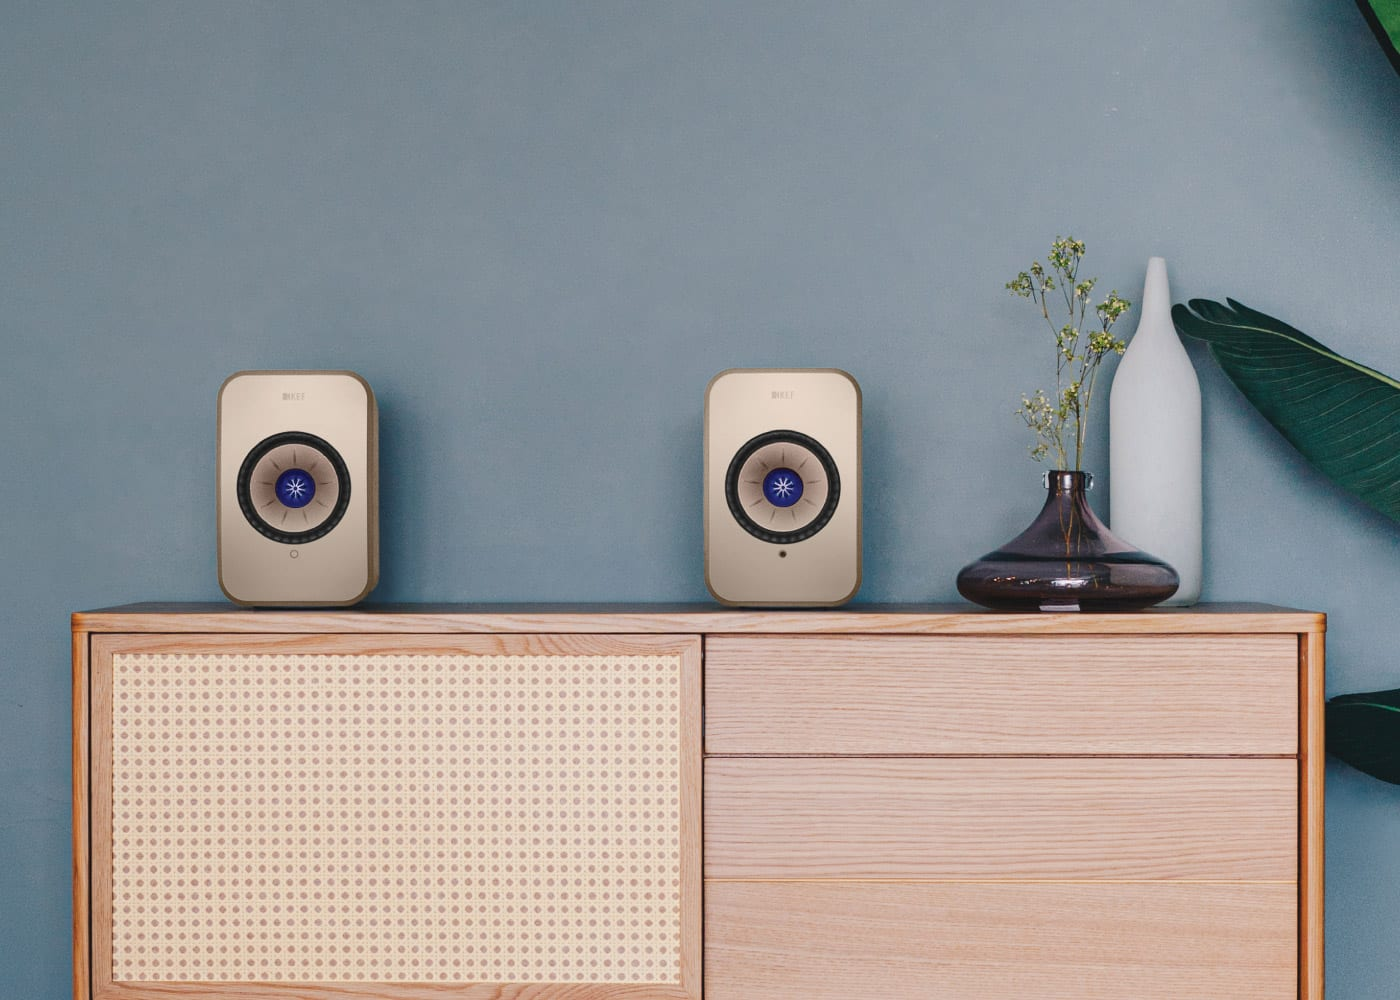 The sweet sound of staycations: Elevate your music with KEF's wireless speakers and enjoy a stay at Hotel ICON